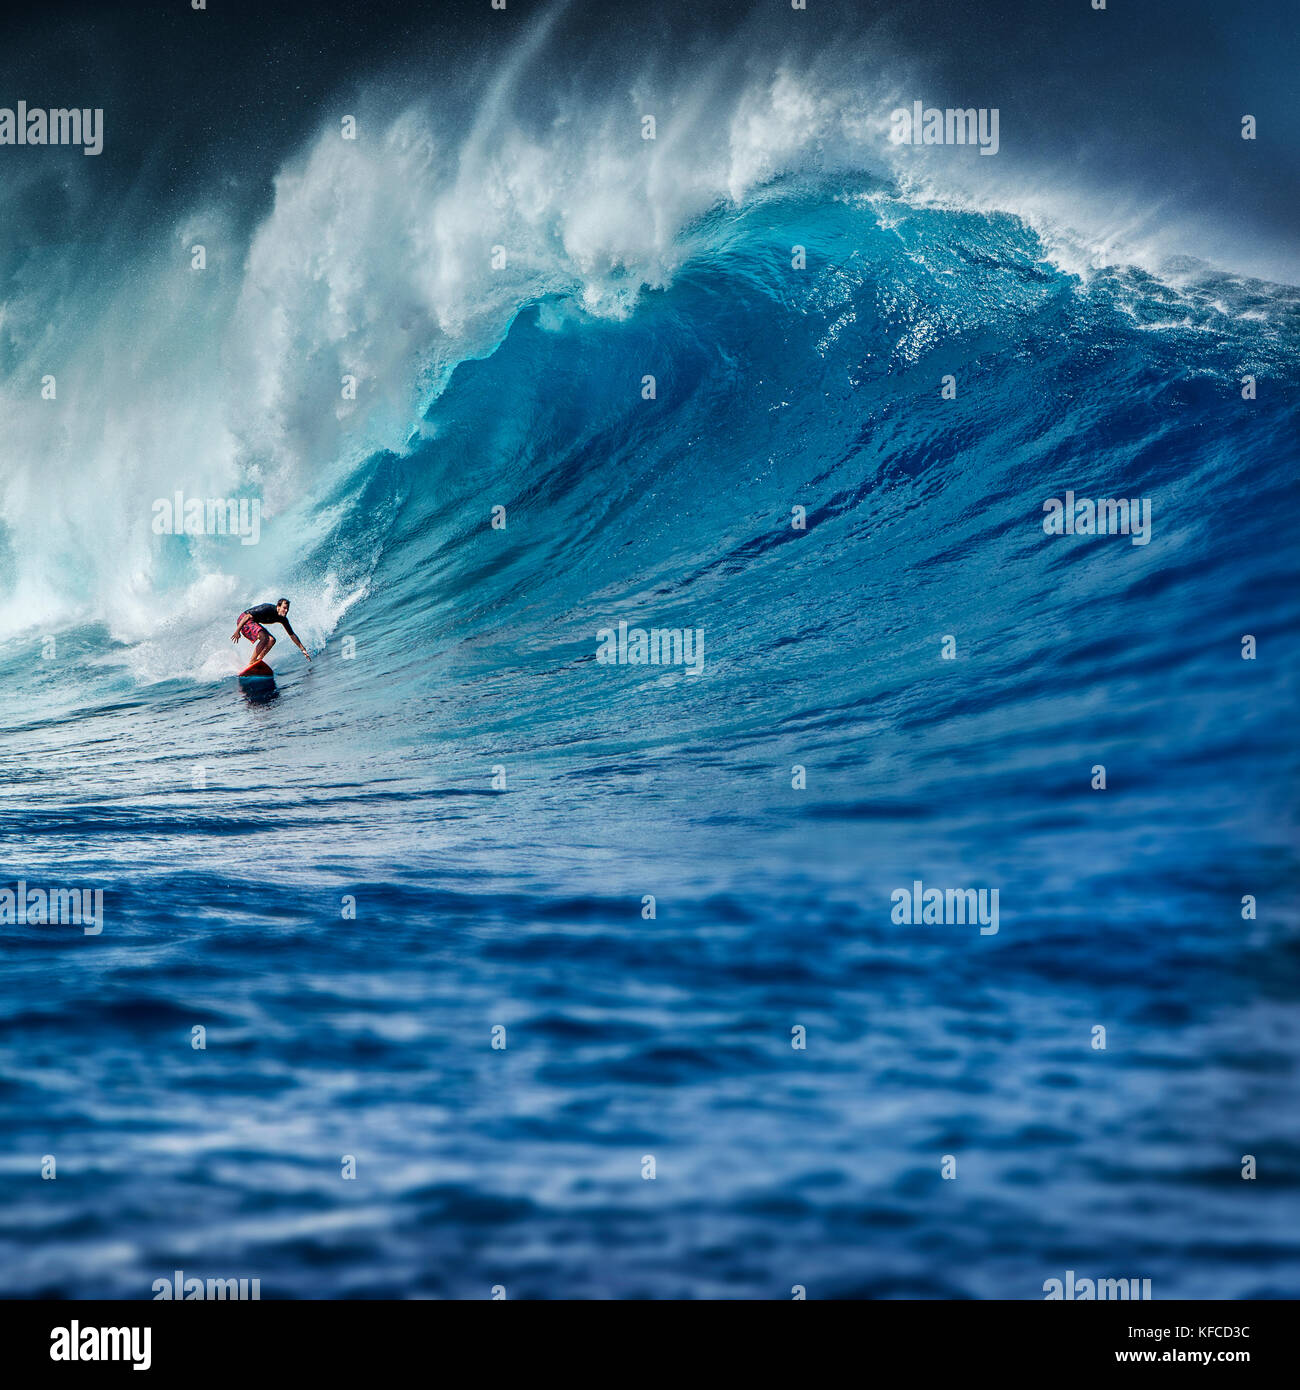 Usa Hawaii Maui Surfer Mike Pietsch Surfs A Giant Wave At